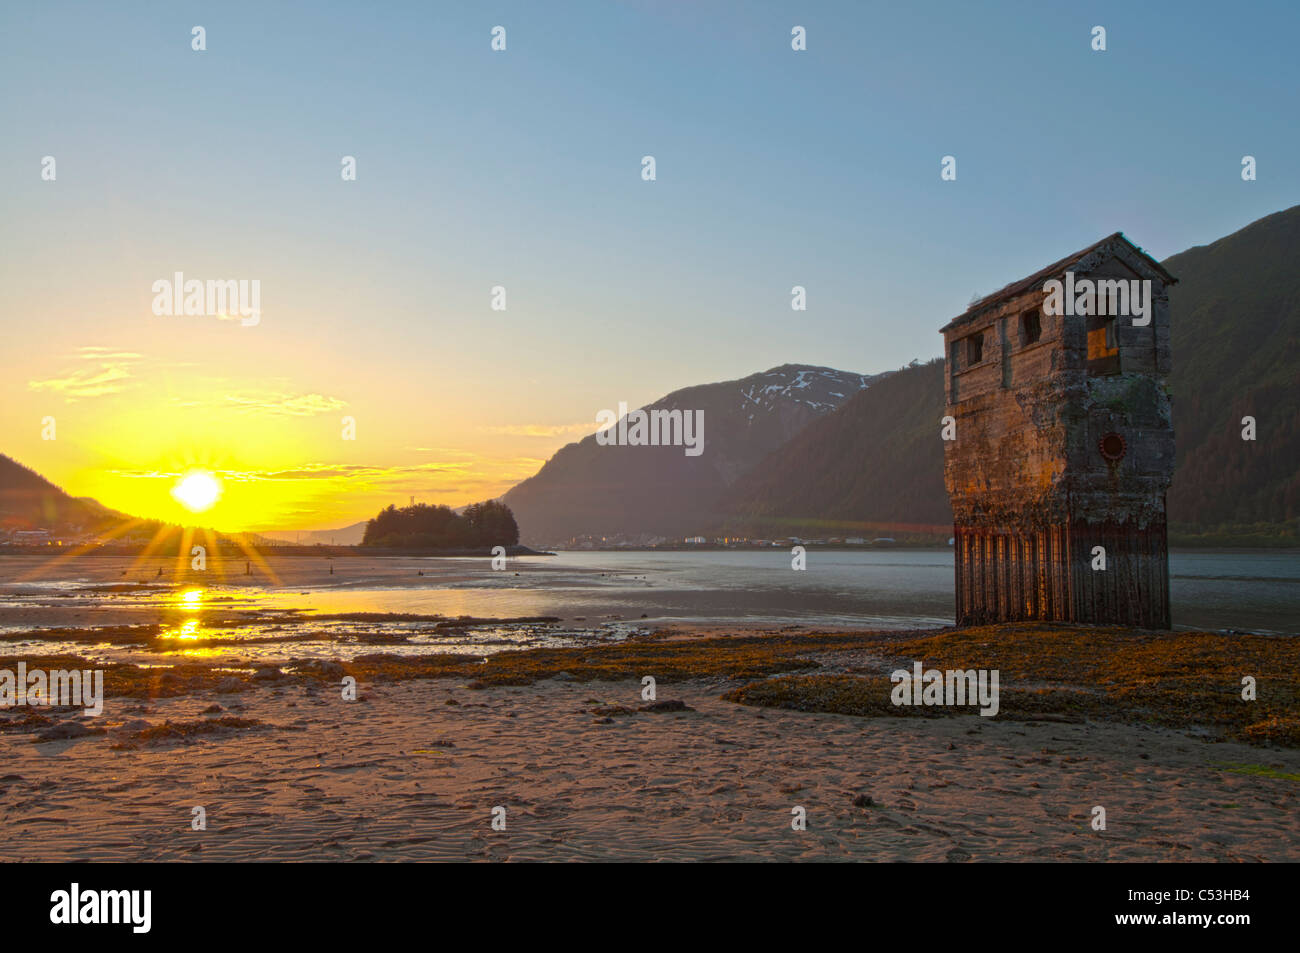 View of an old placer mining operation on the shore of Douglas Island at sunset, across from Juneau, Alaska, HDR. - Stock Image